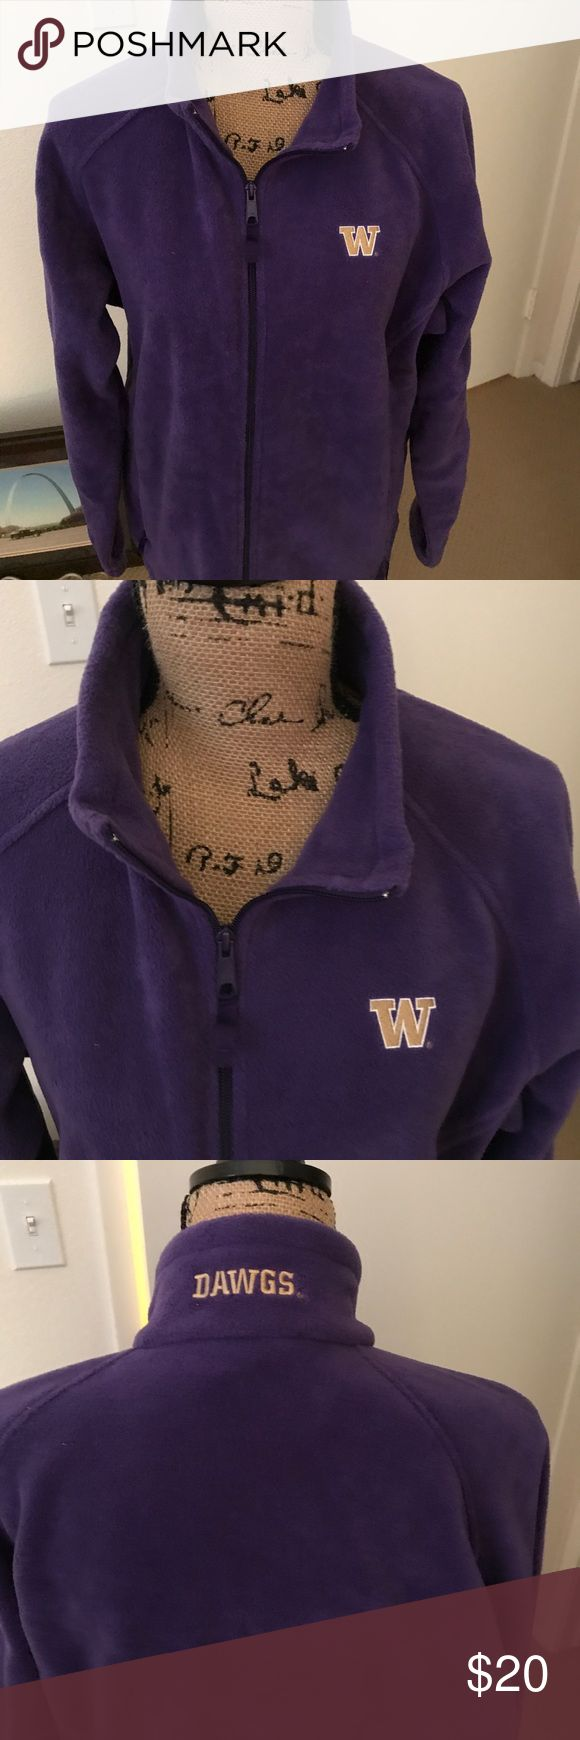 NEW * UW Jacket by Columbia, XL, Brand NEW! NEW * UW Jacket by Columbia, XL, Brand NEW! Color: Purple. Zip front. Bought at UW bookstore ~ never worn. Absolutely PERFECT! Columbia Jackets & Coats